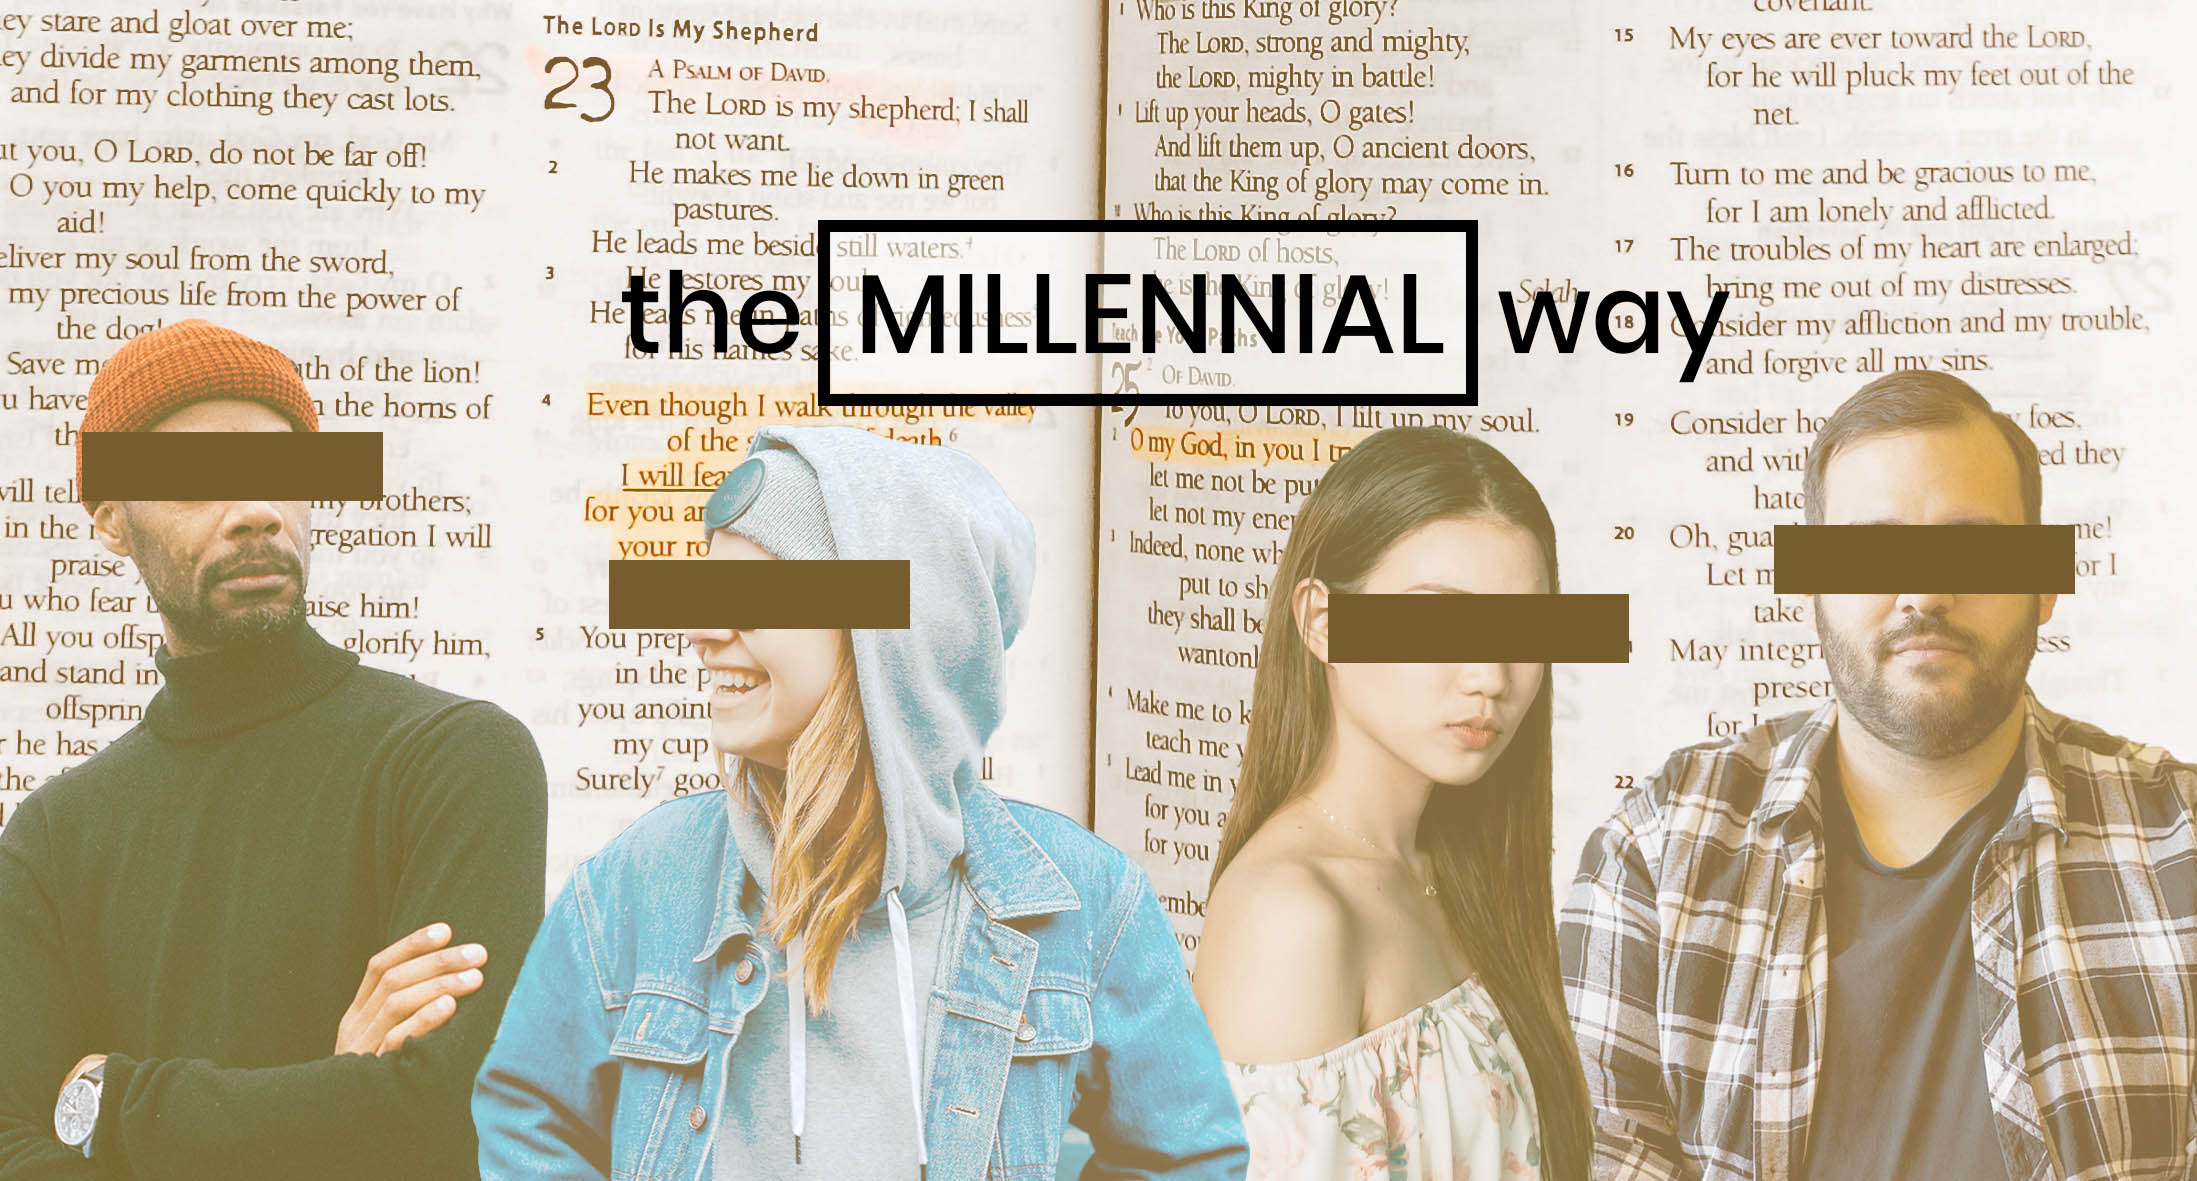 The millennial way